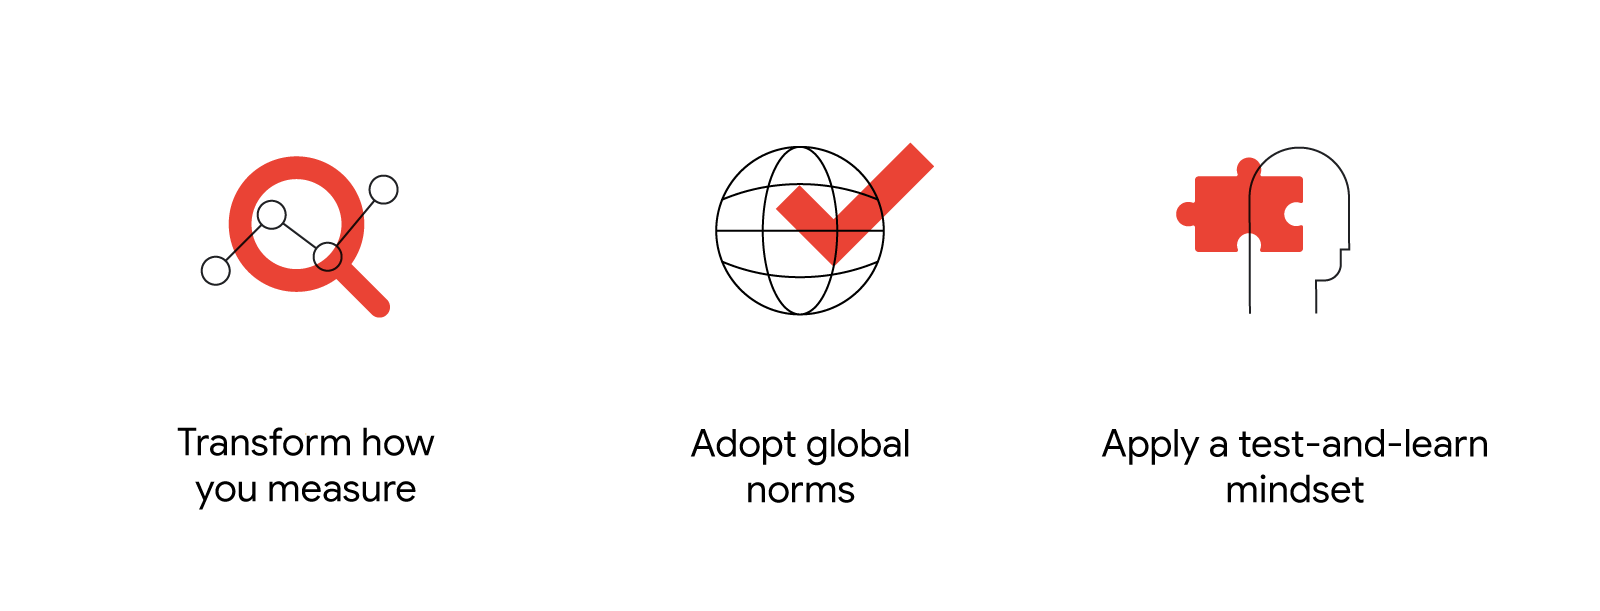 3 line-drawn icons representing the three concepts: 1. Transform how you measure, 2. Adopt global norms, 3. Adapt a test-and-learn mindset